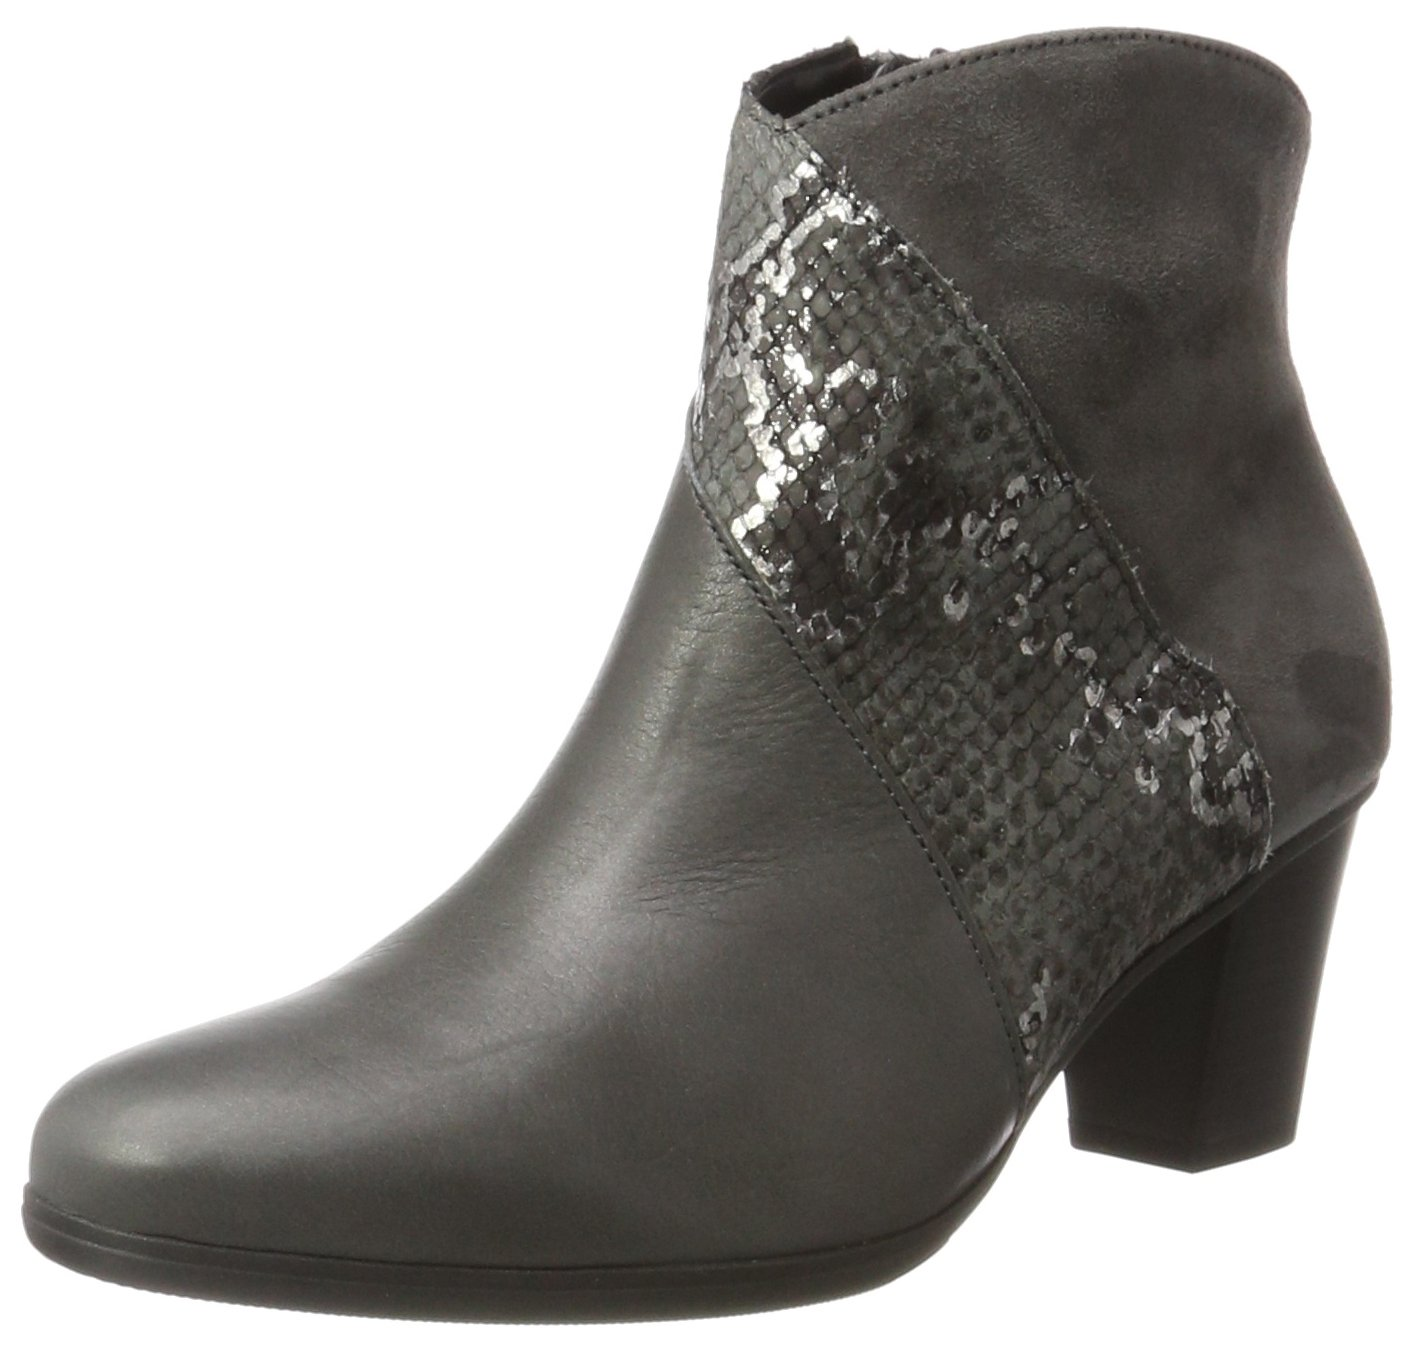 Gabor Shoes Gabor Basic, Botas para Mujer37 EU|Gris (69 Dark-grey Micro)